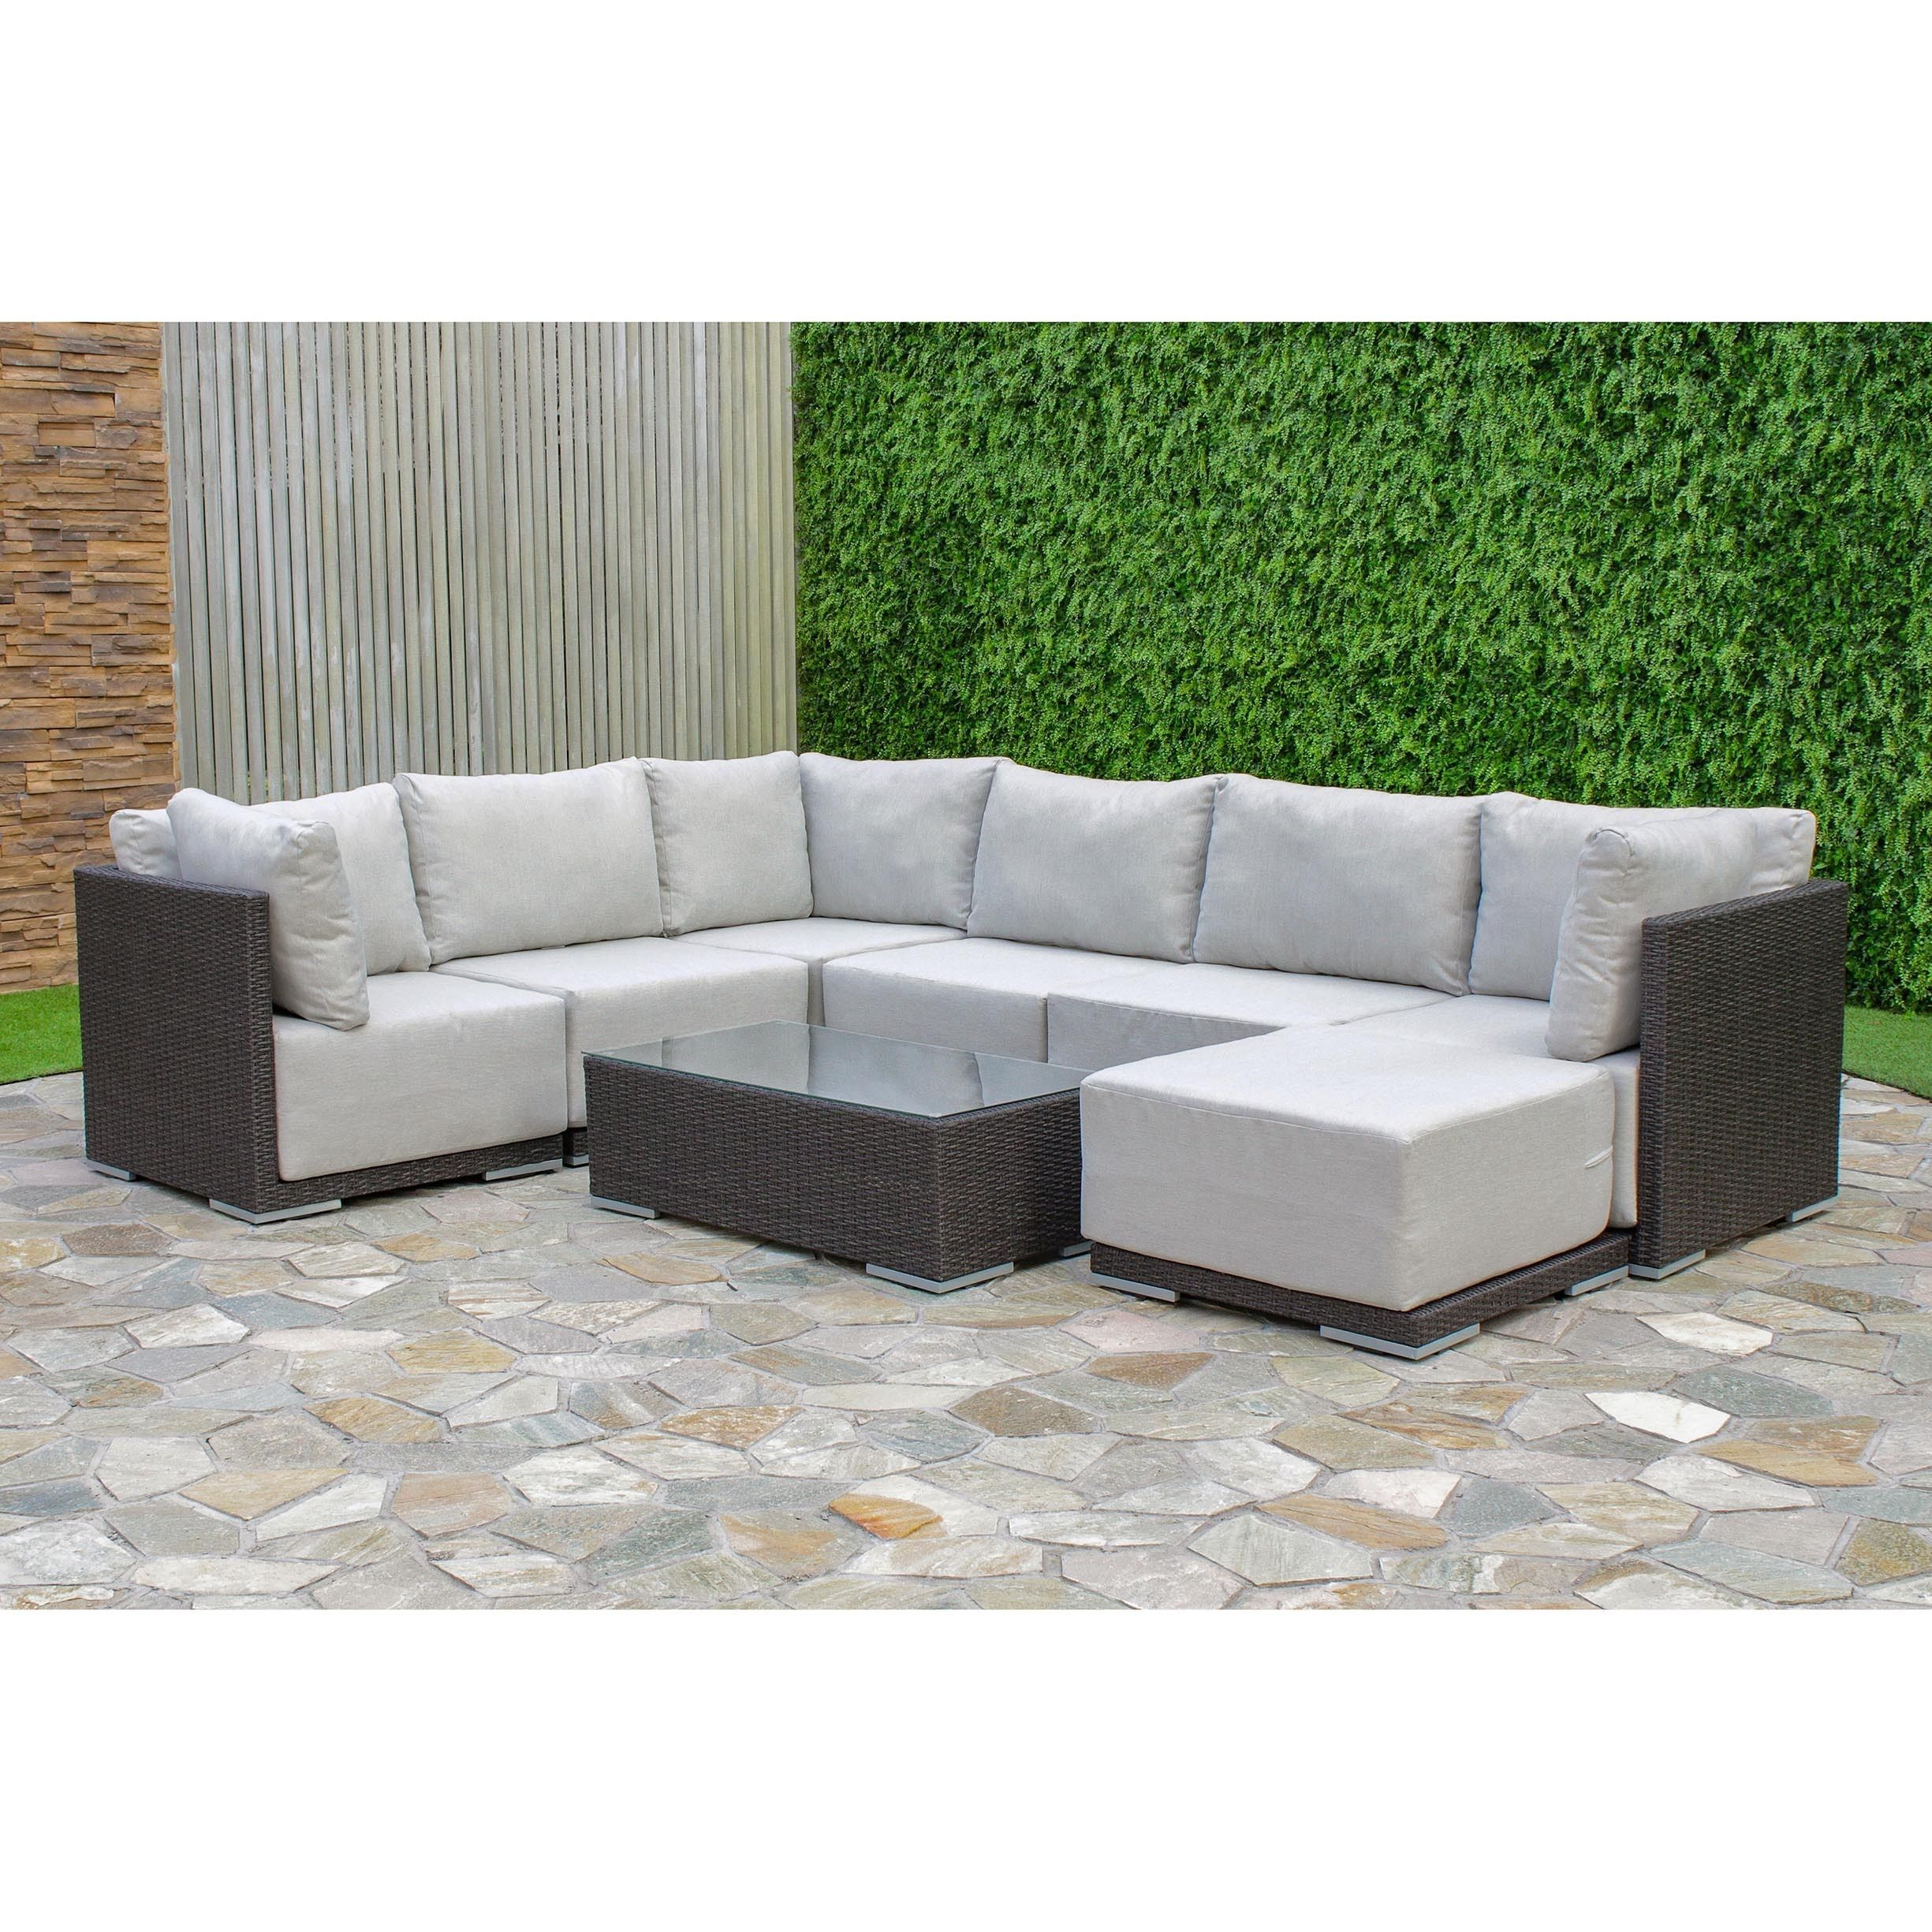 Aventura Wicker Sectional Set Brown Size 5 Piece Sets Patio